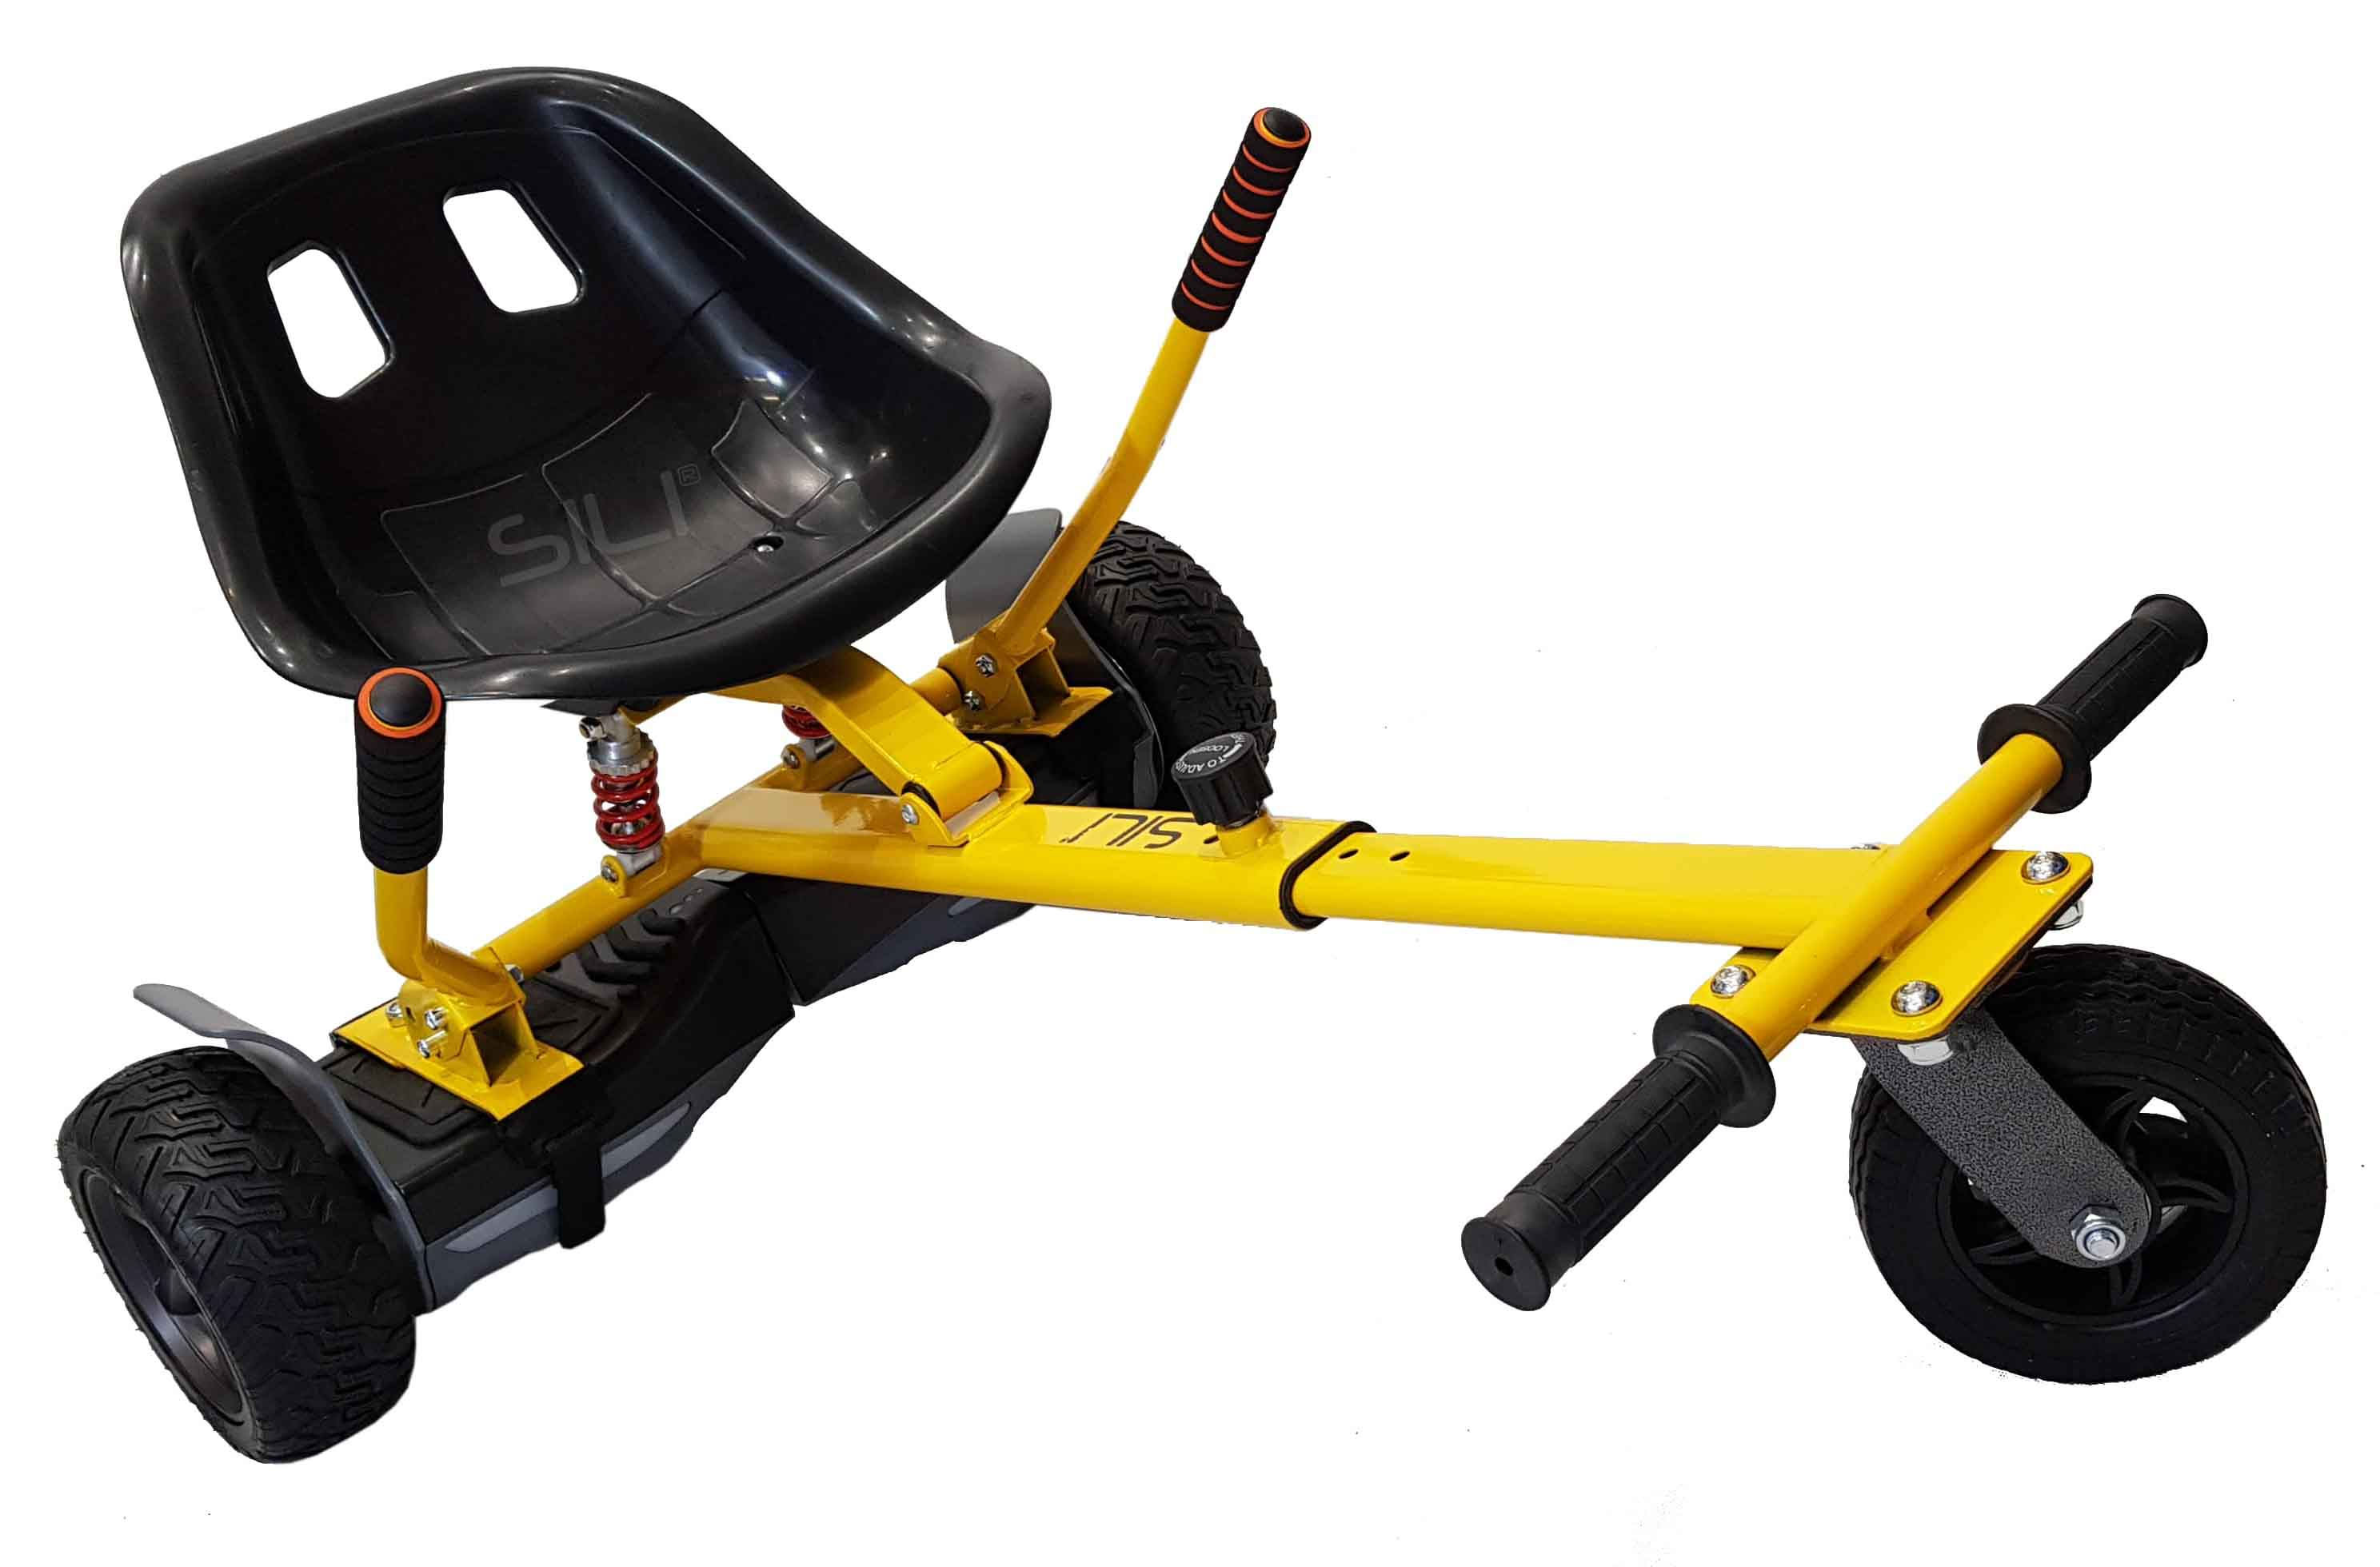 SILI Offroad Suspension Hoverkart Gokart Attachment Buggy